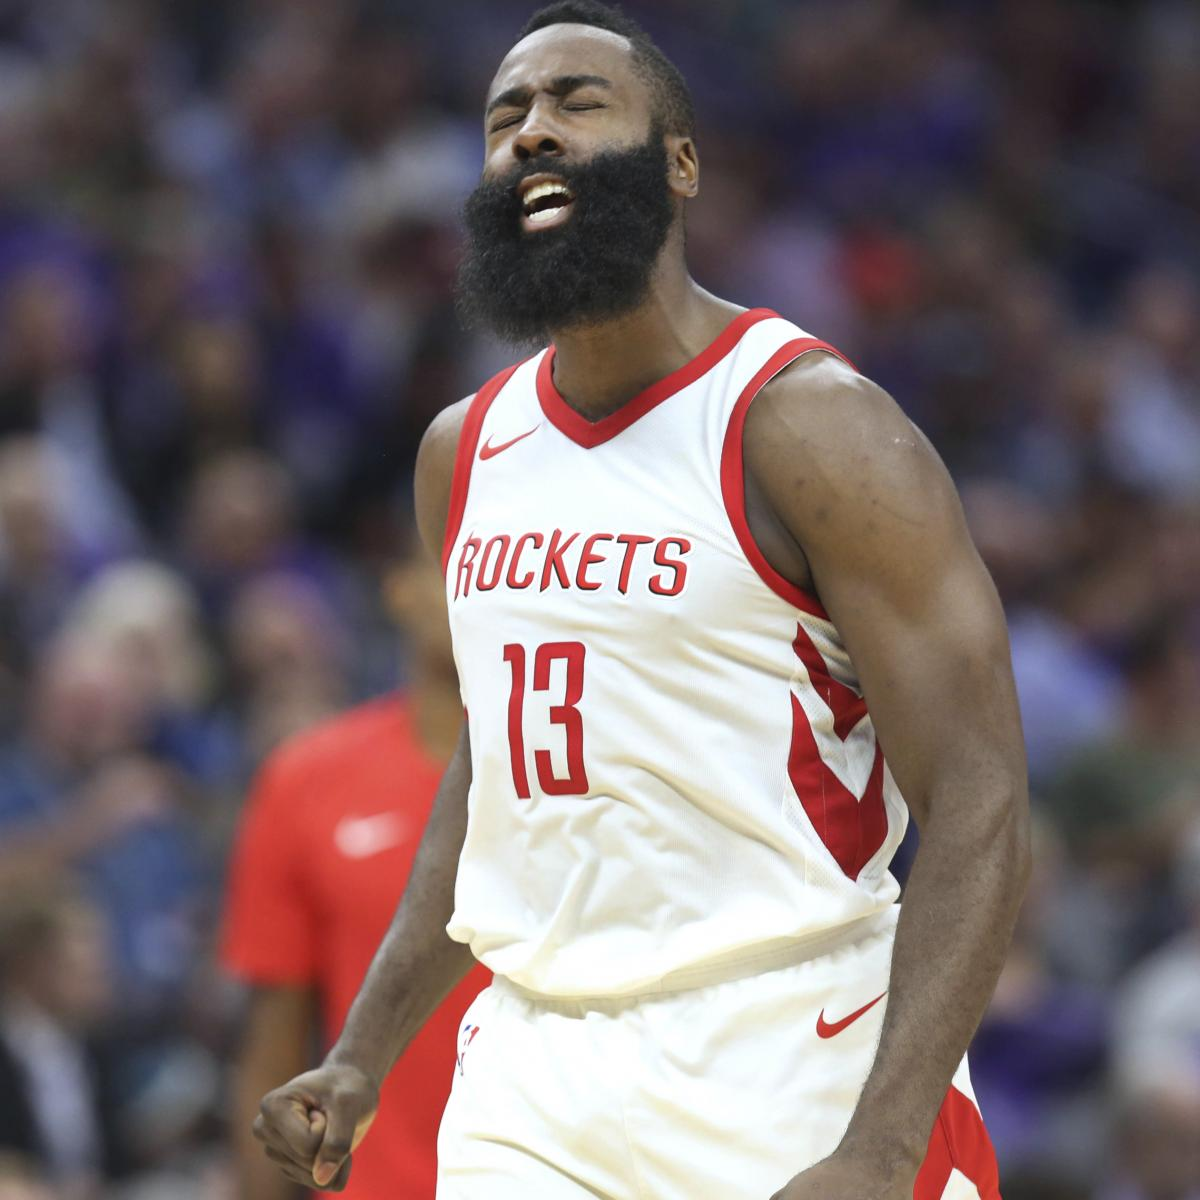 James Harden to Return from Hamstring Injury vs. T-Wolves on Minutes Restriction